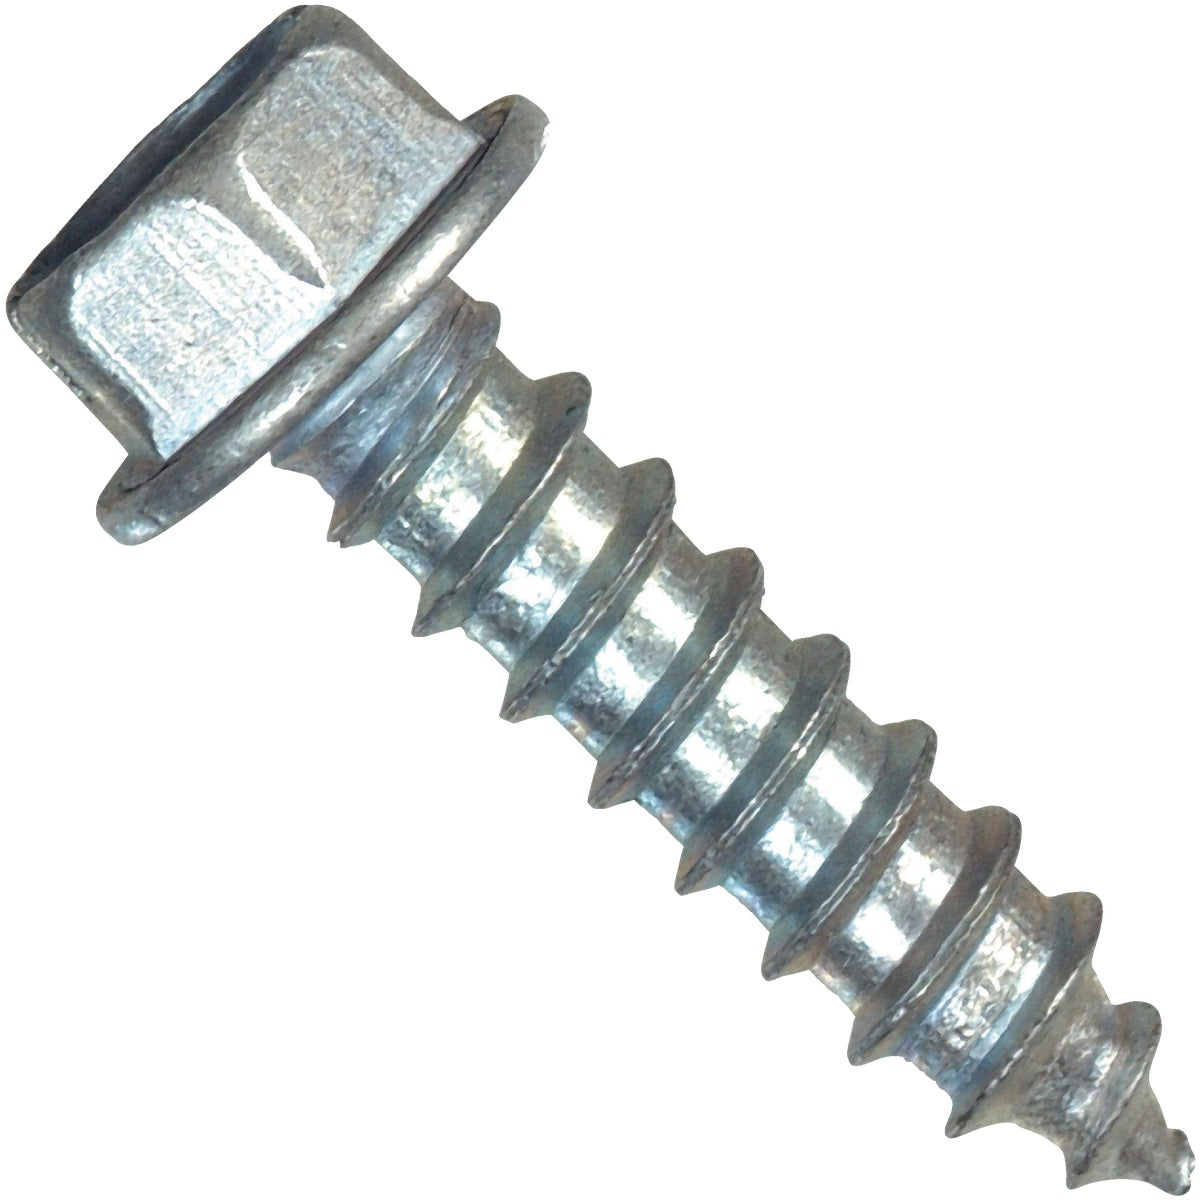 10X2 HWH SHT MTL SCREW - 70307 by Hillman Fastener